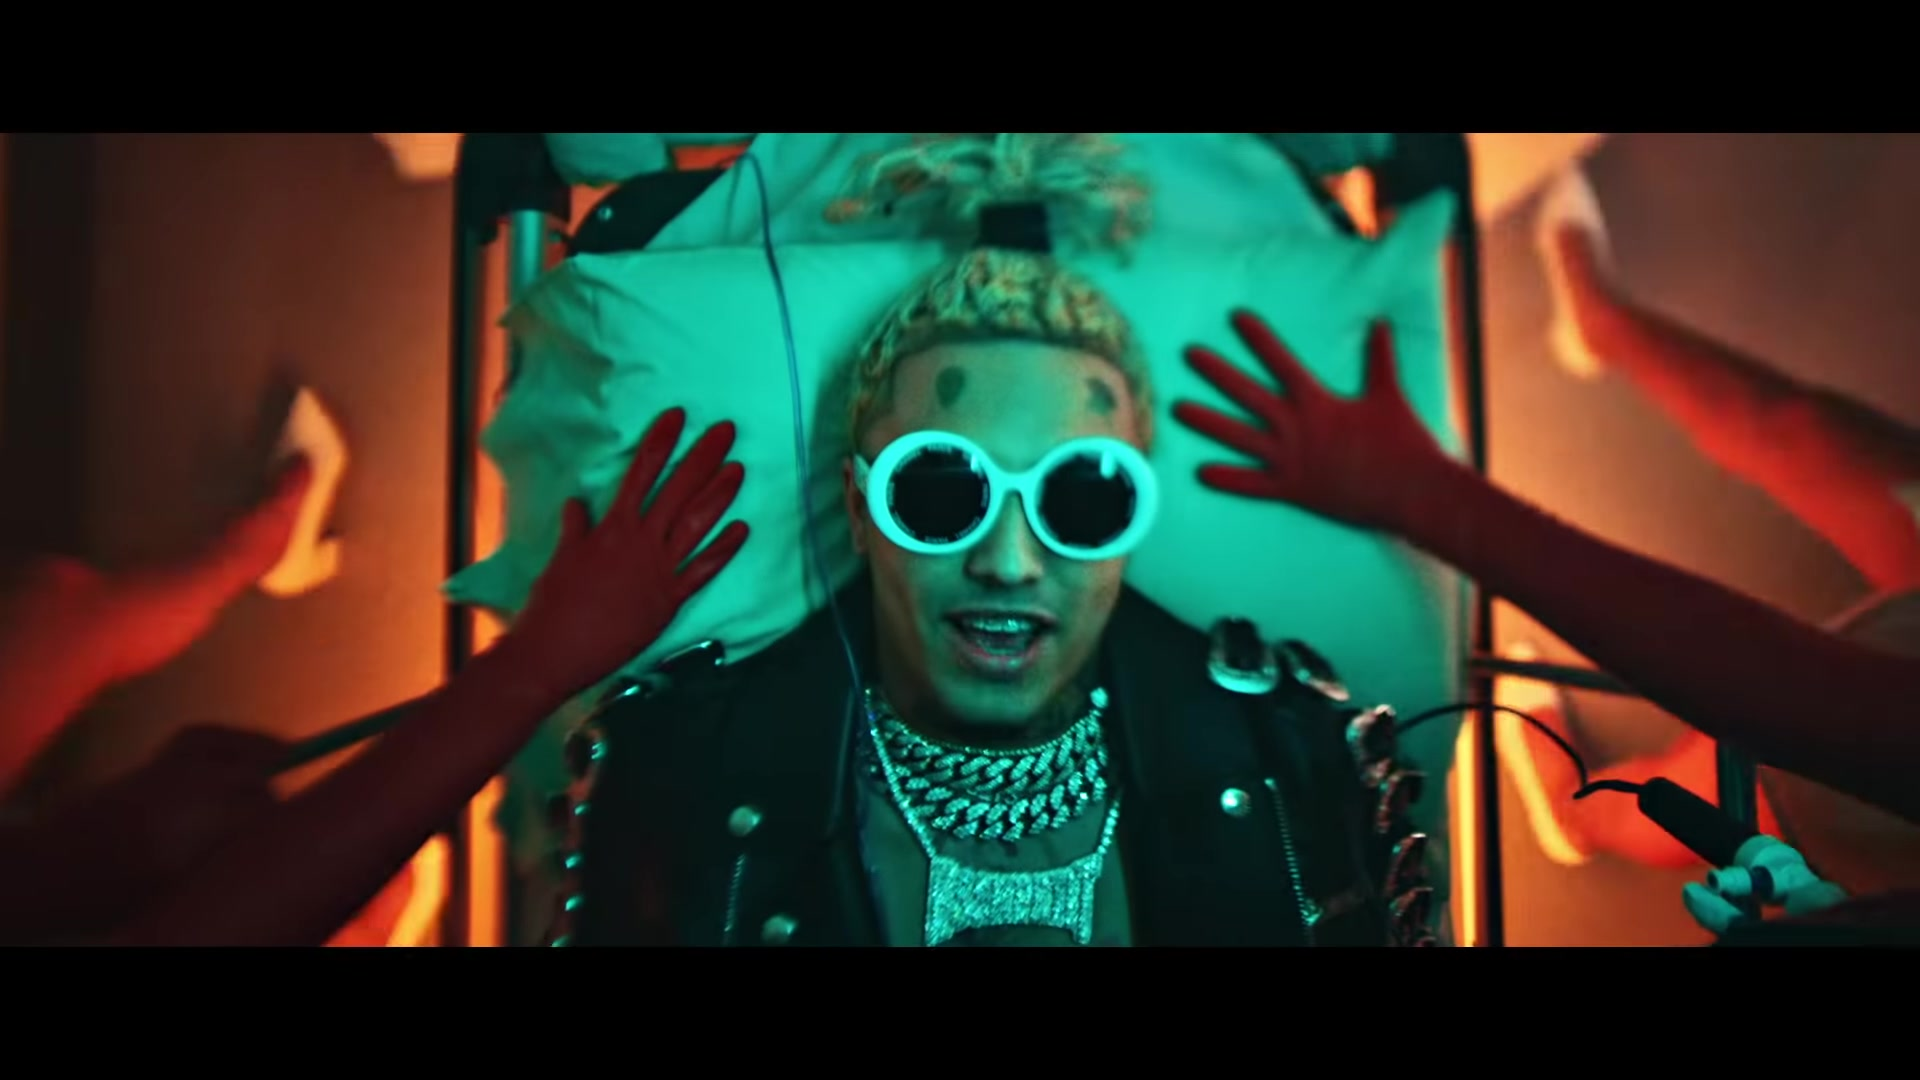 Chanel White Round Frame Sunglasses Worn By Lil Pump In